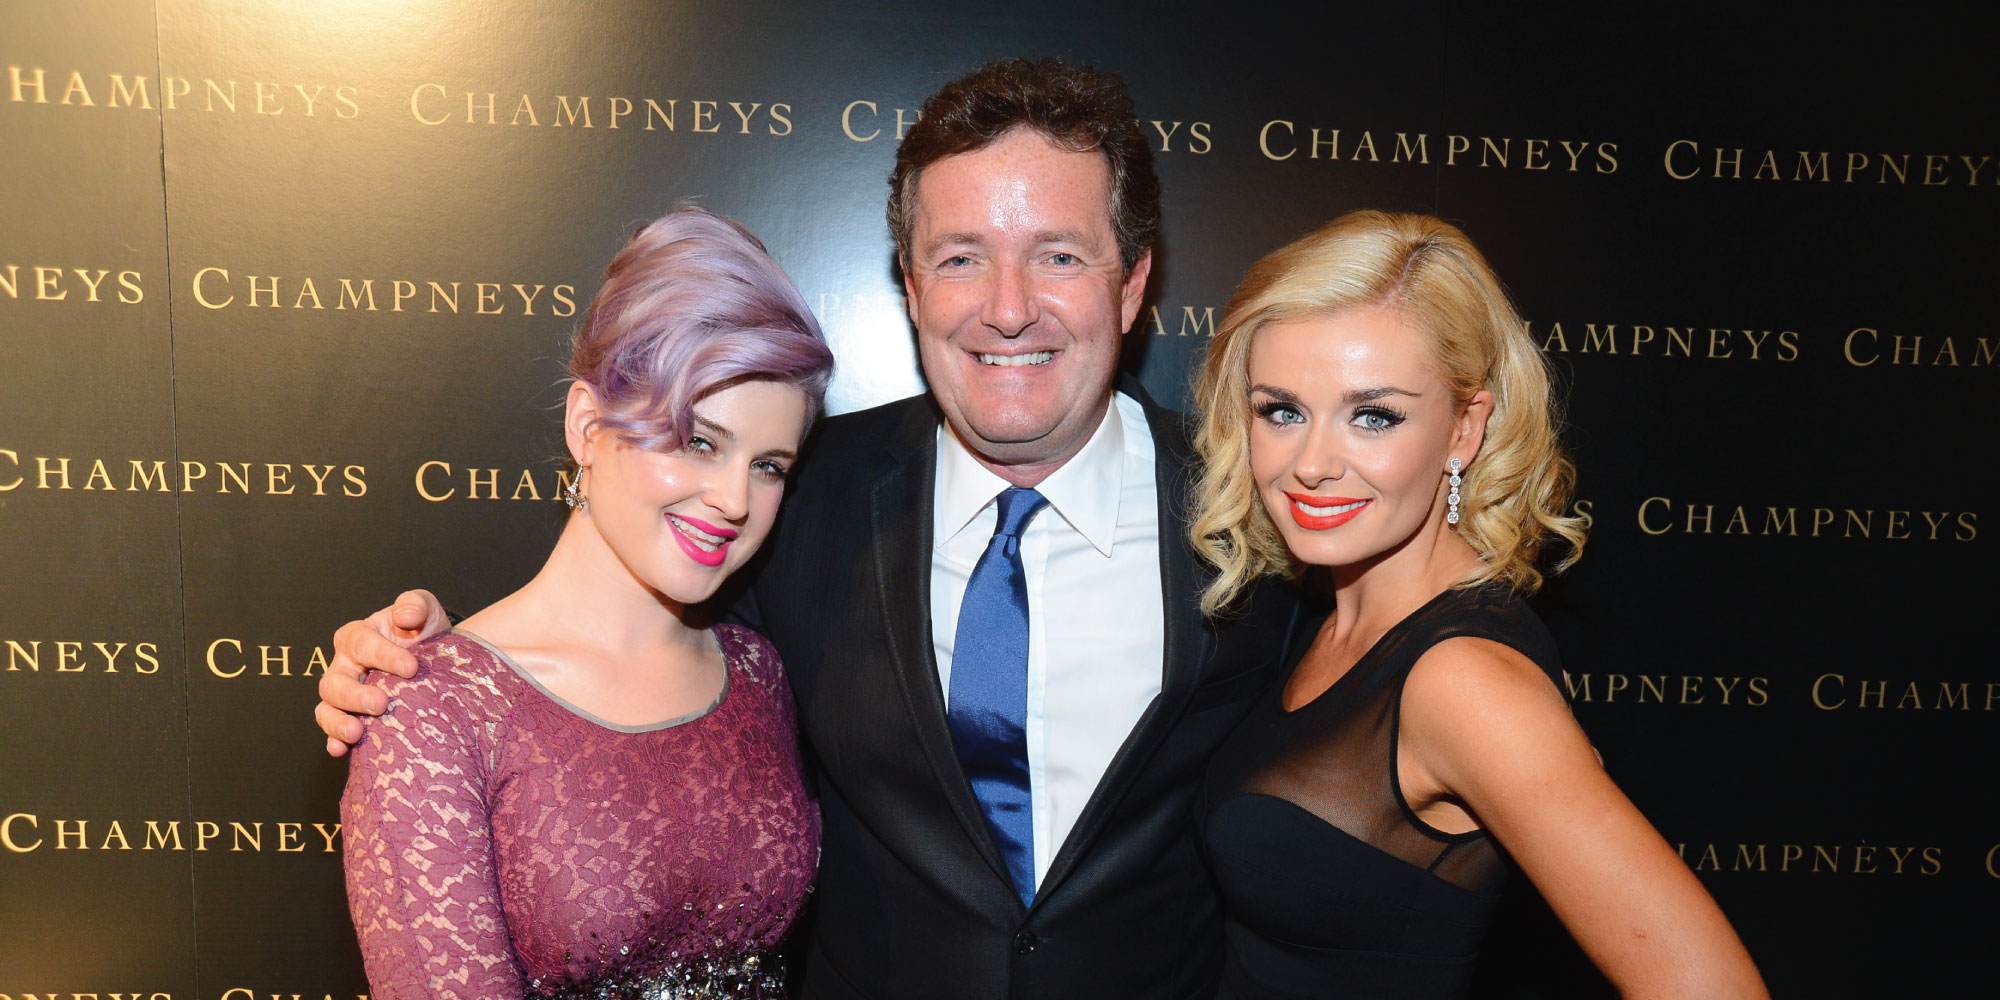 Kelly, Piers and Katherine at Champneys USA launch